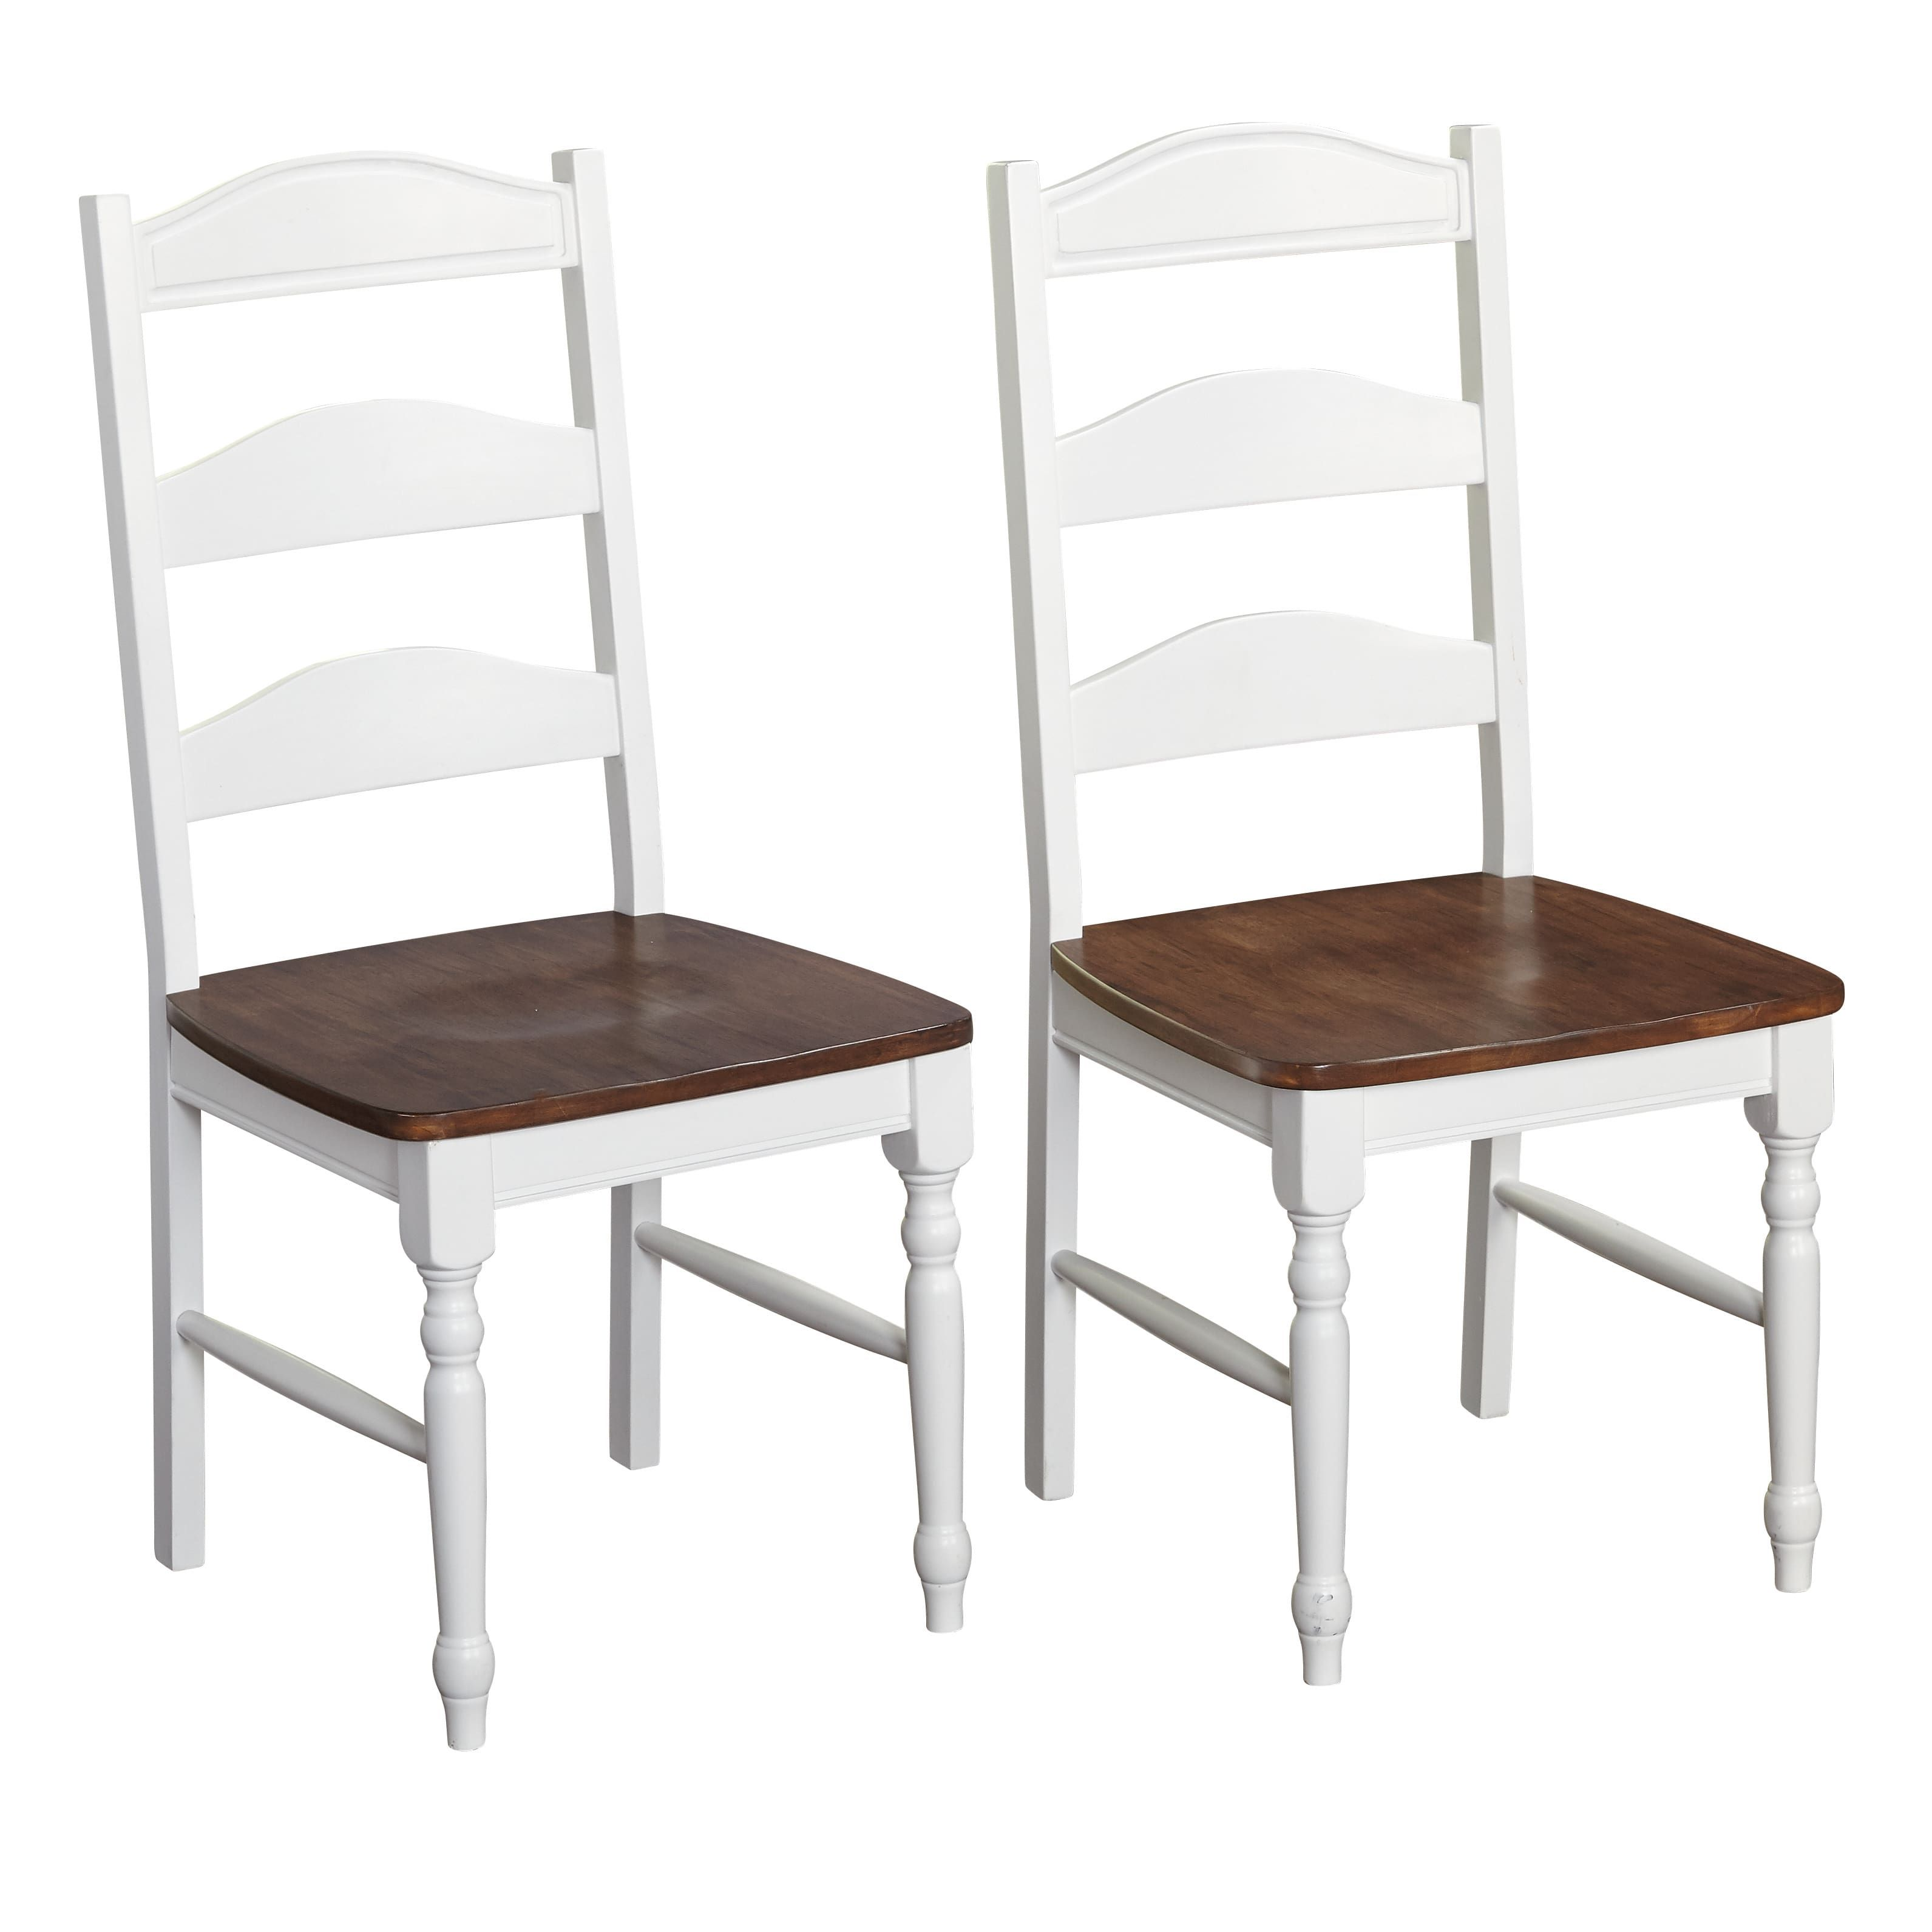 Simple living skipton dining chair set of showroom ideas in